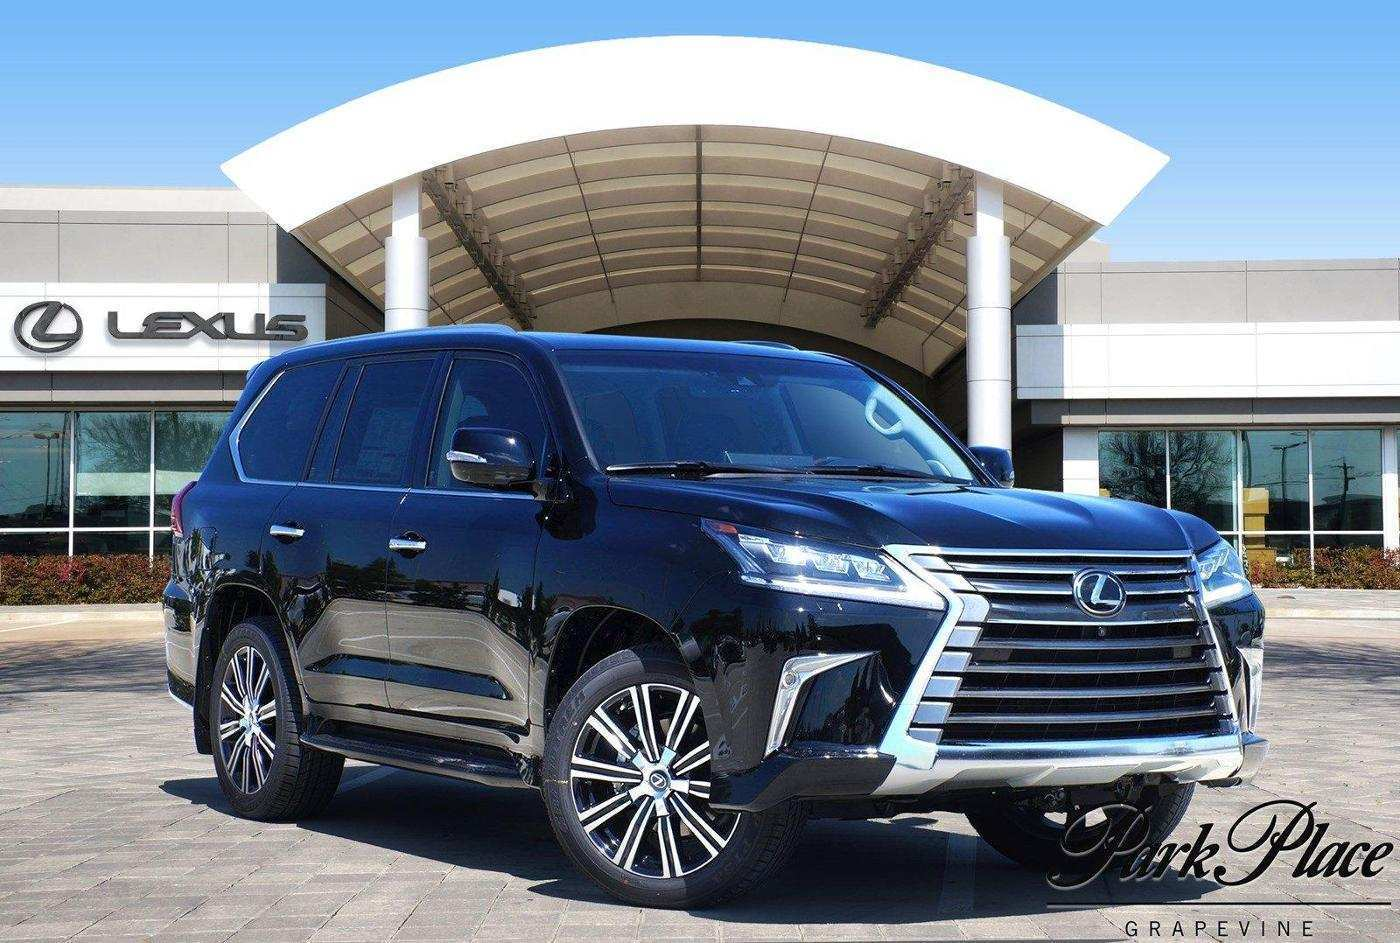 49 Best Review 2019 Lexus Lx 570 First Drive with 2019 Lexus Lx 570